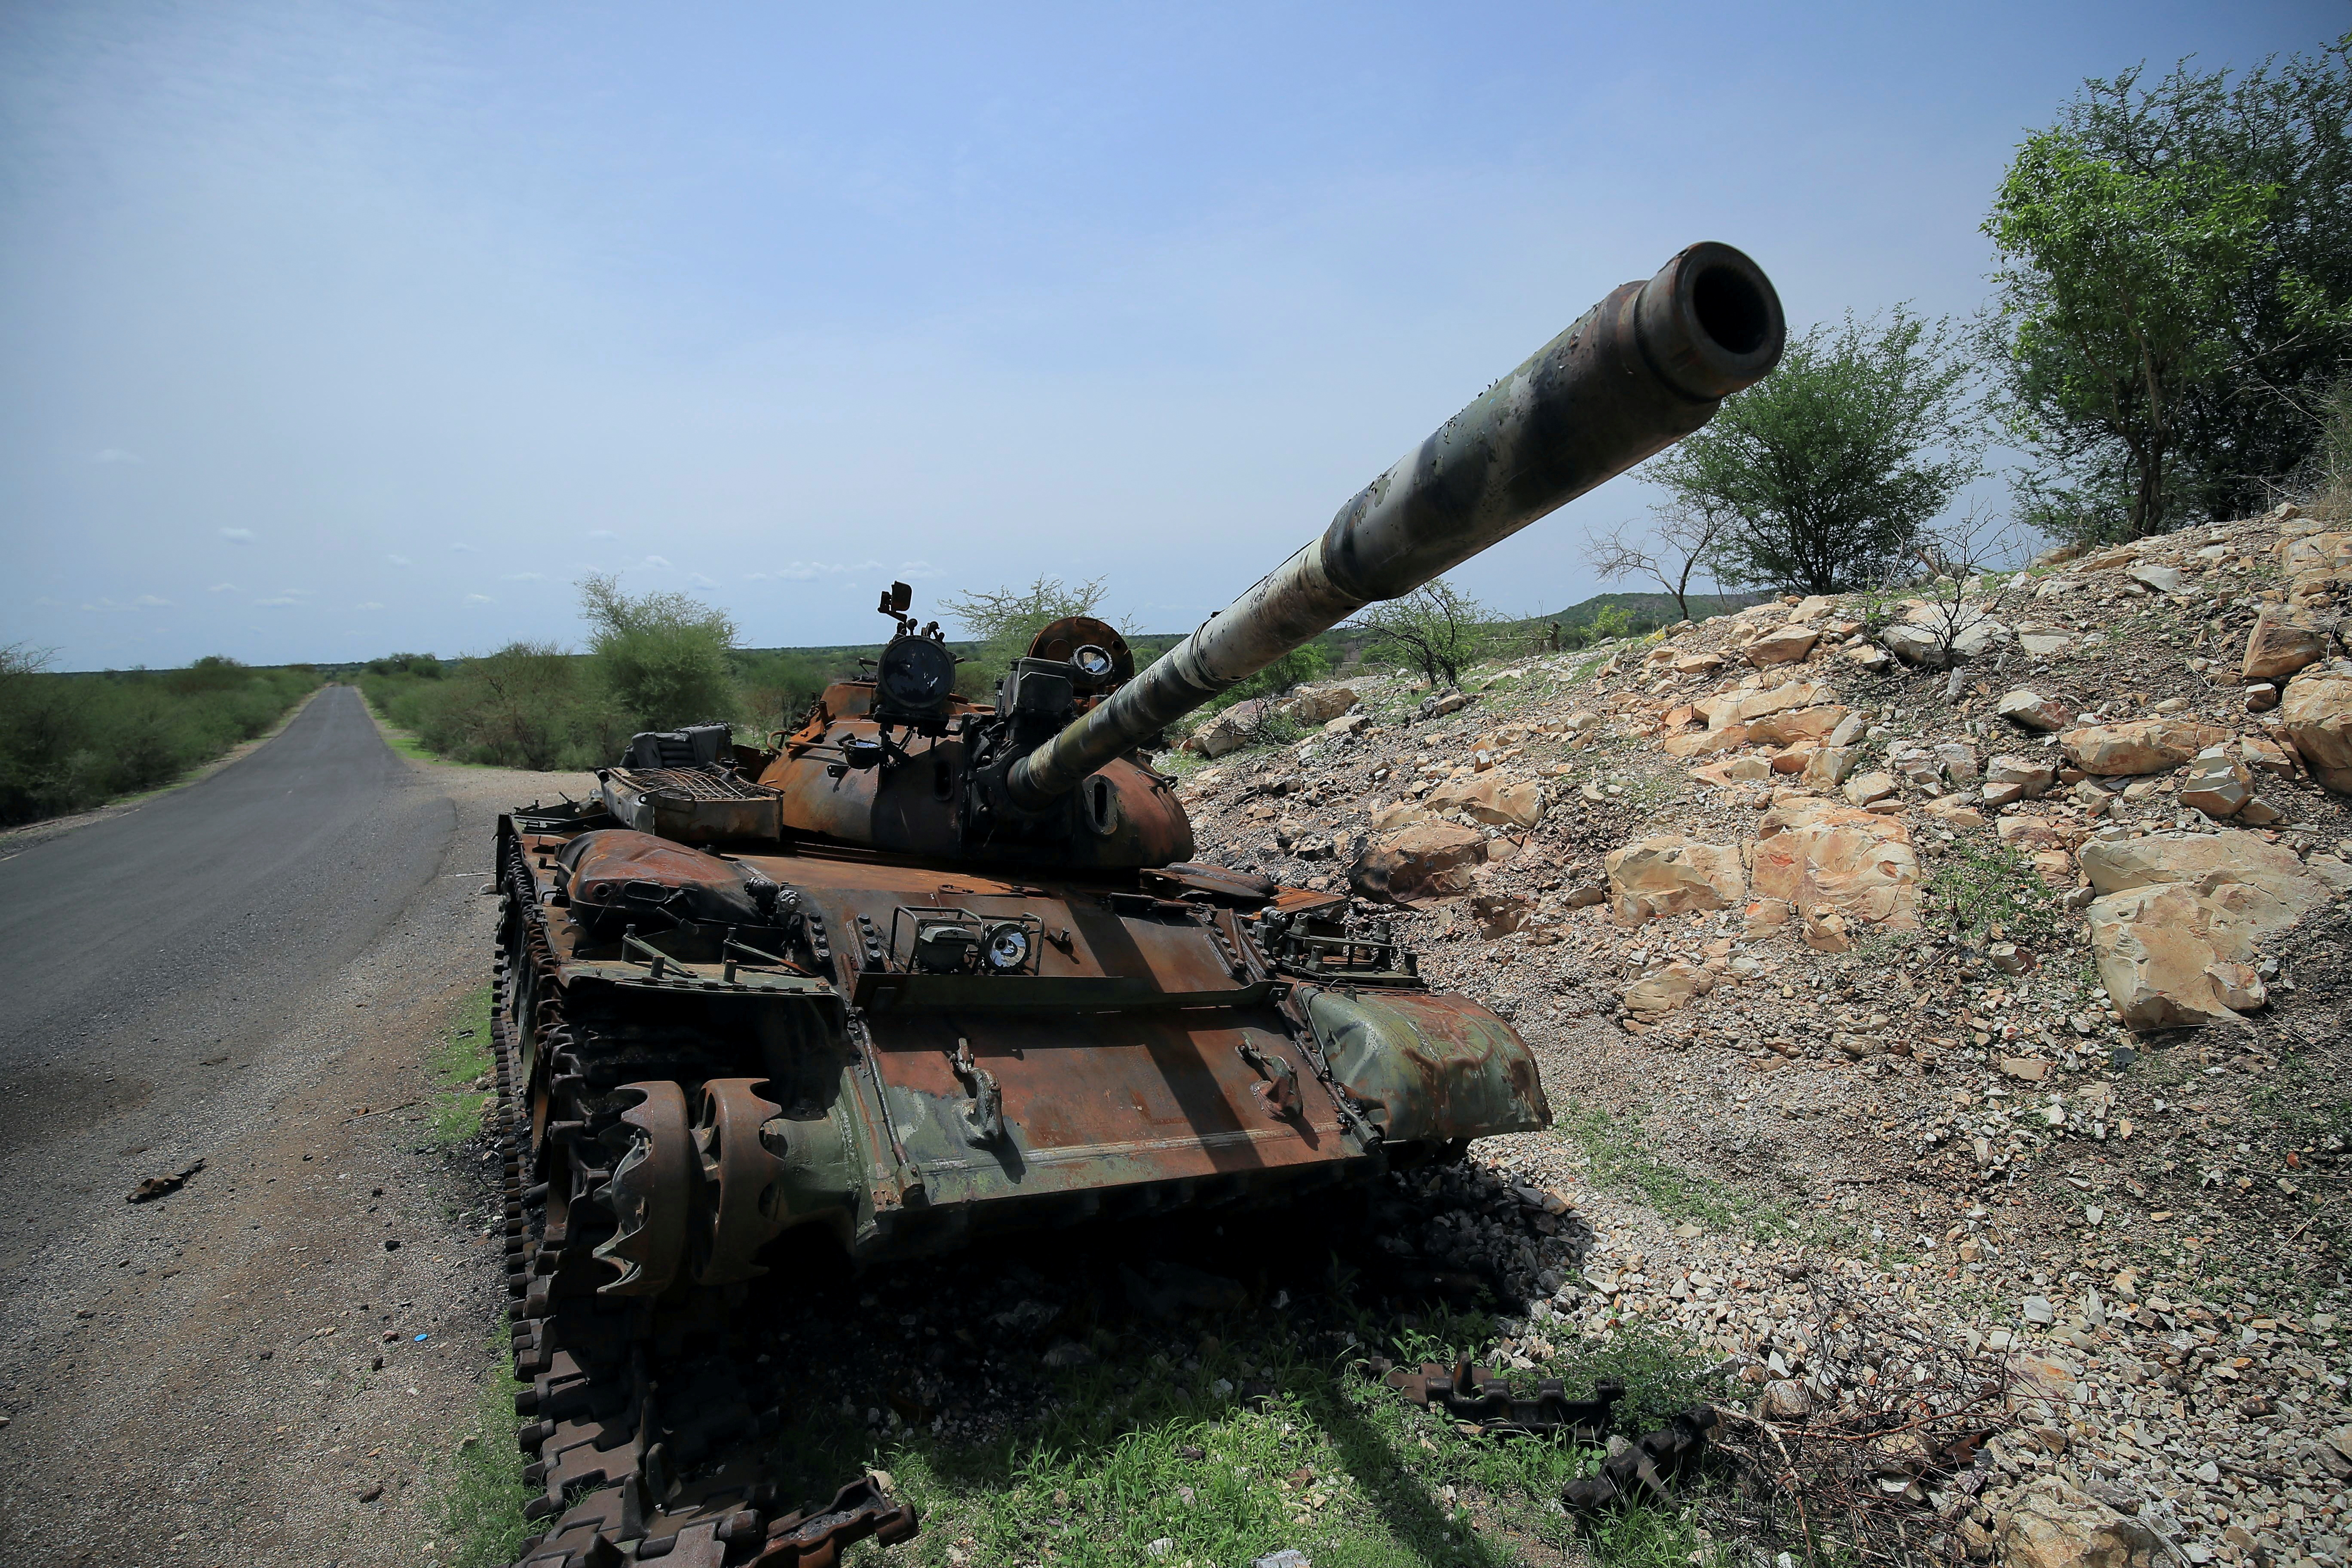 A tank damaged during the fighting between Ethiopia's National Defense Force (ENDF) and Tigray Special Forces stands on the outskirts of Humera town in Ethiopia July 1, 2021.  REUTERS/Stringer/File Photo